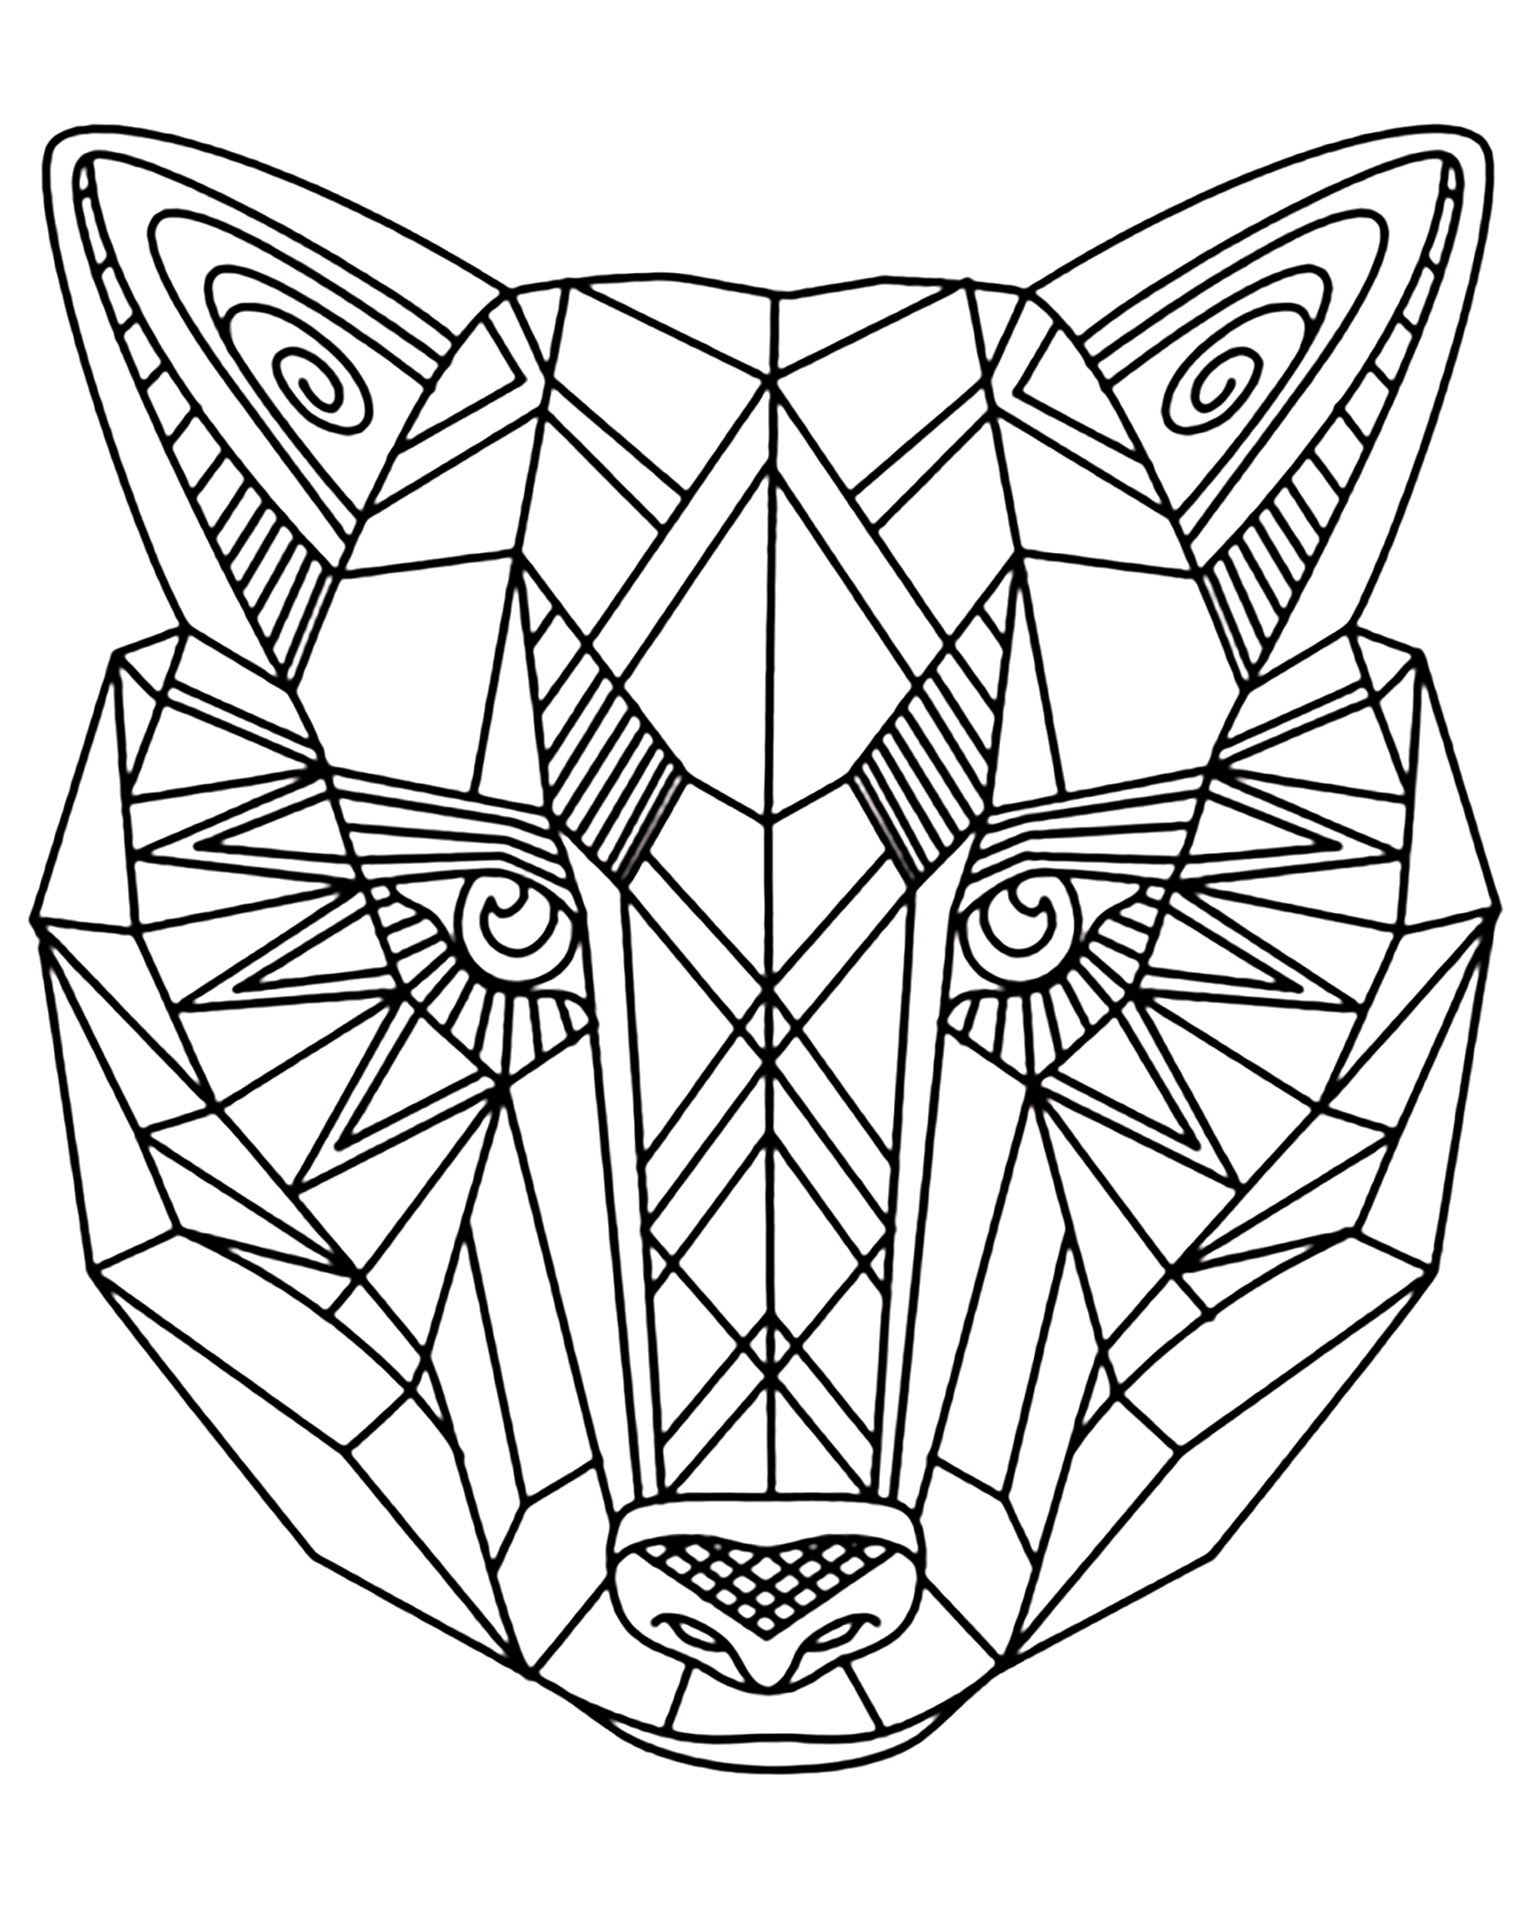 Wolf mandala coloring pages - Animals Coloring Pages For Adults Coloring Page Wolf 1